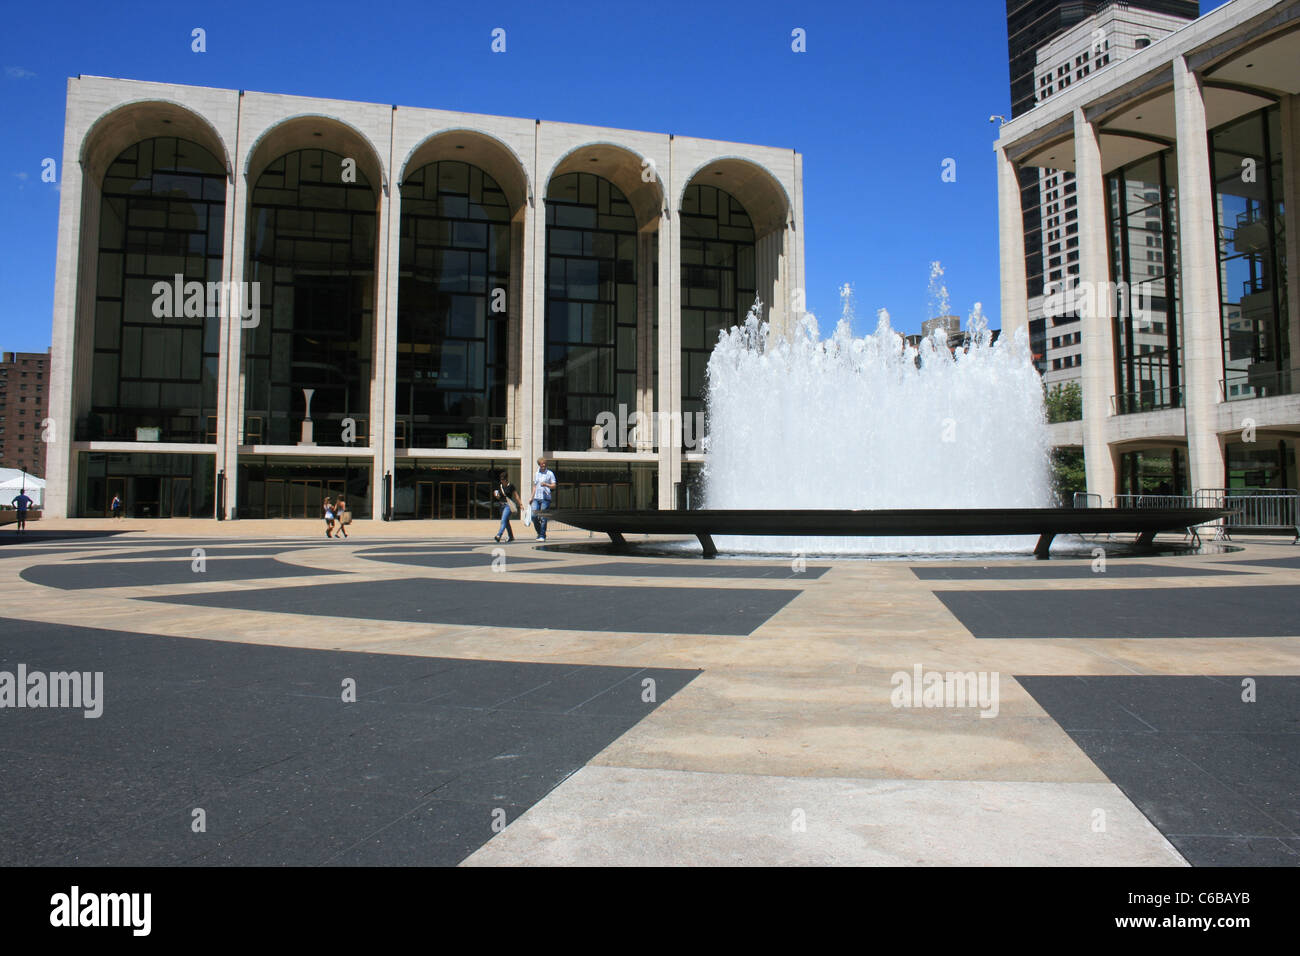 Plaza at Lincoln Center, New York City. - Stock Image